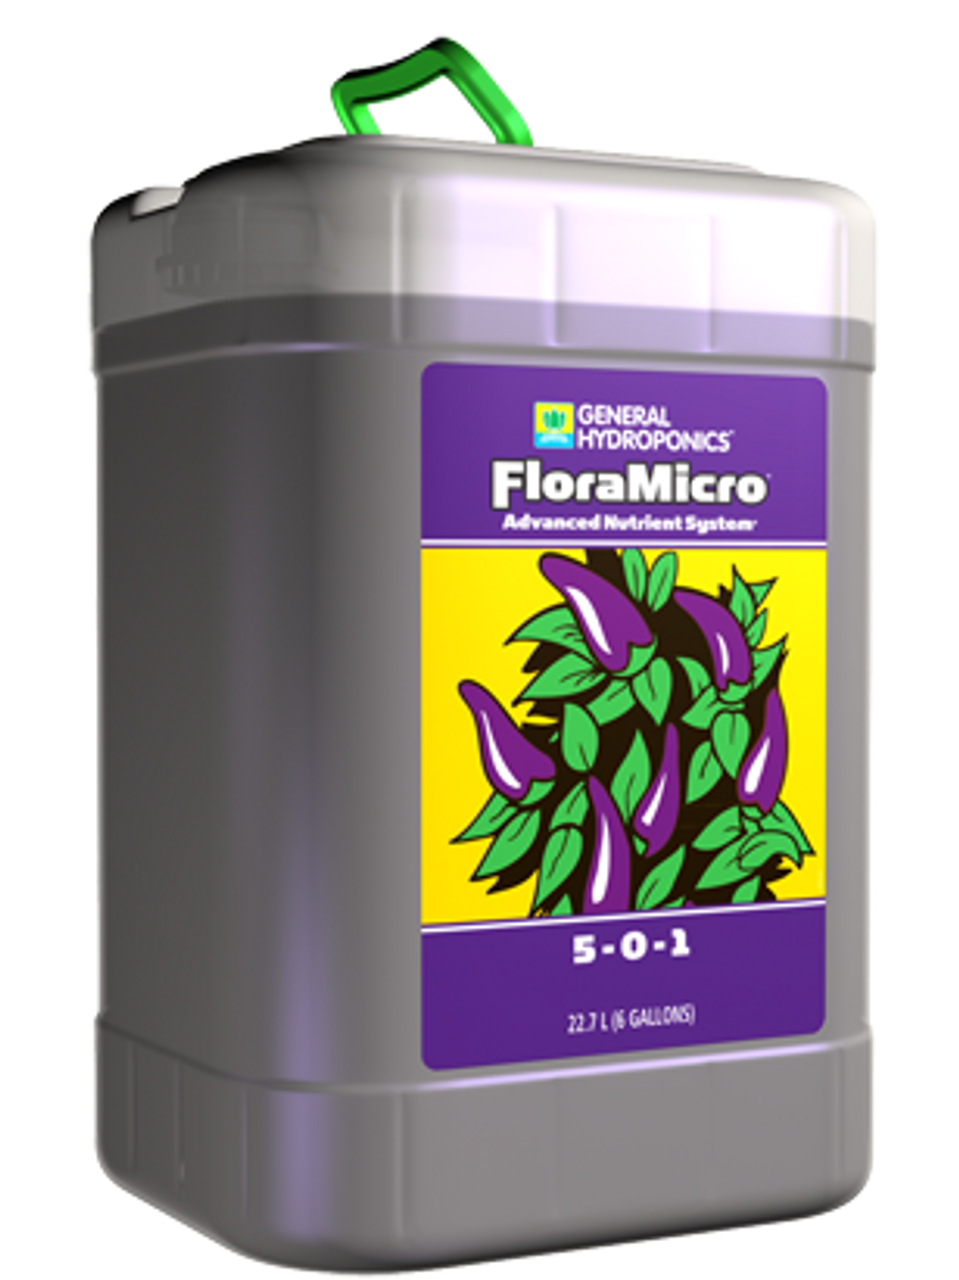 General Hydroponics FloraMicro Hardwater - Grow King Hydroponics and